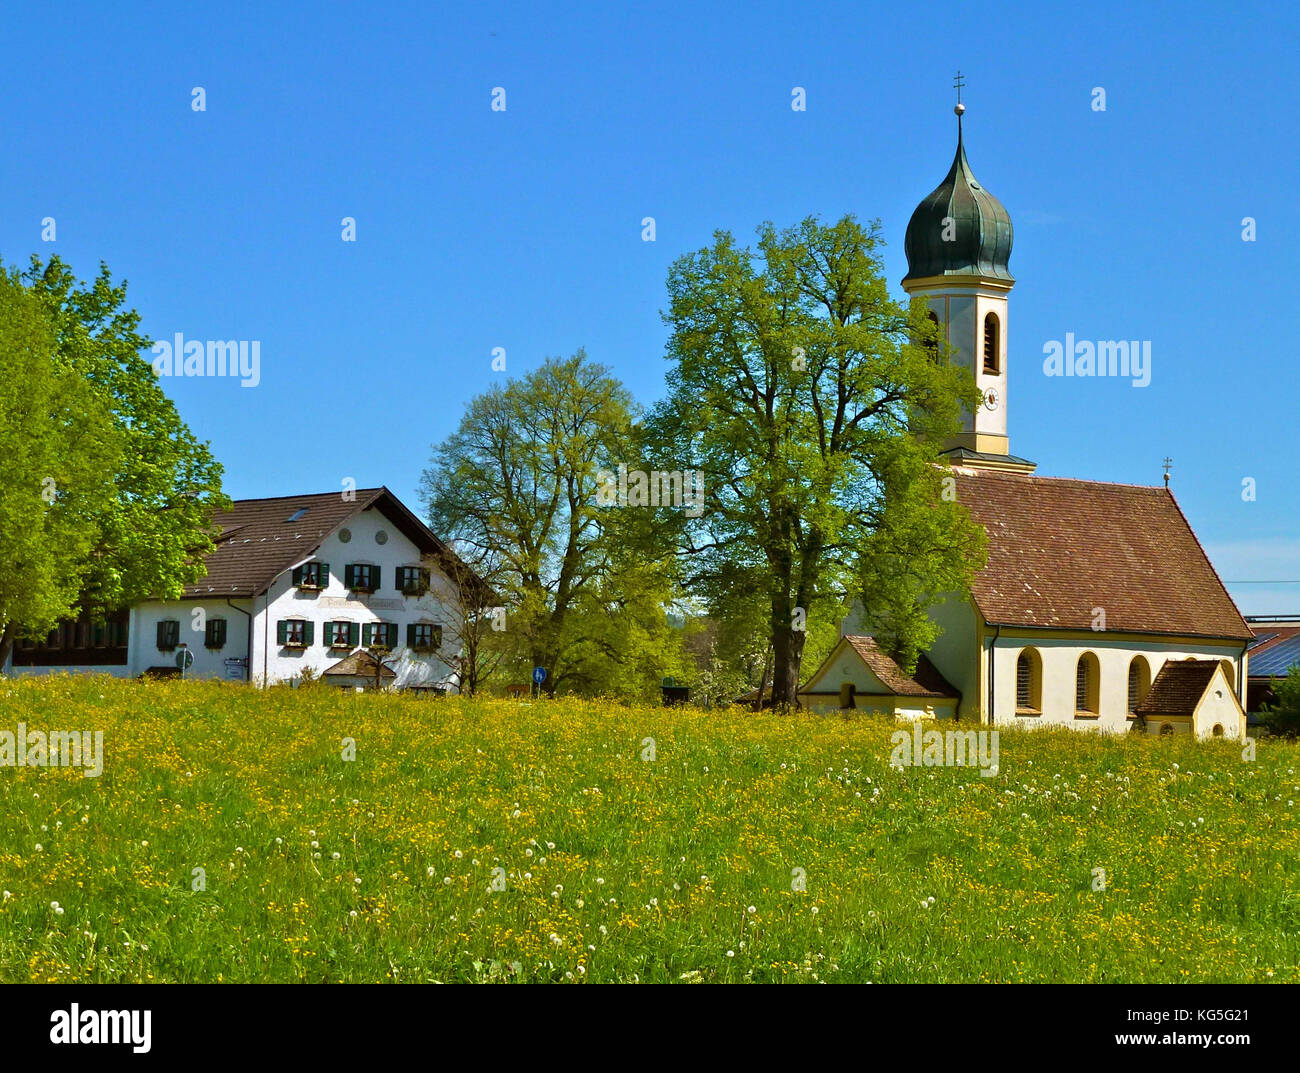 Germany, Bavaria, Froschhausen am Riegsee (lake), St. Leonhard church, Pension St. Leonhard (guesthouse), Meadow, - Stock Image